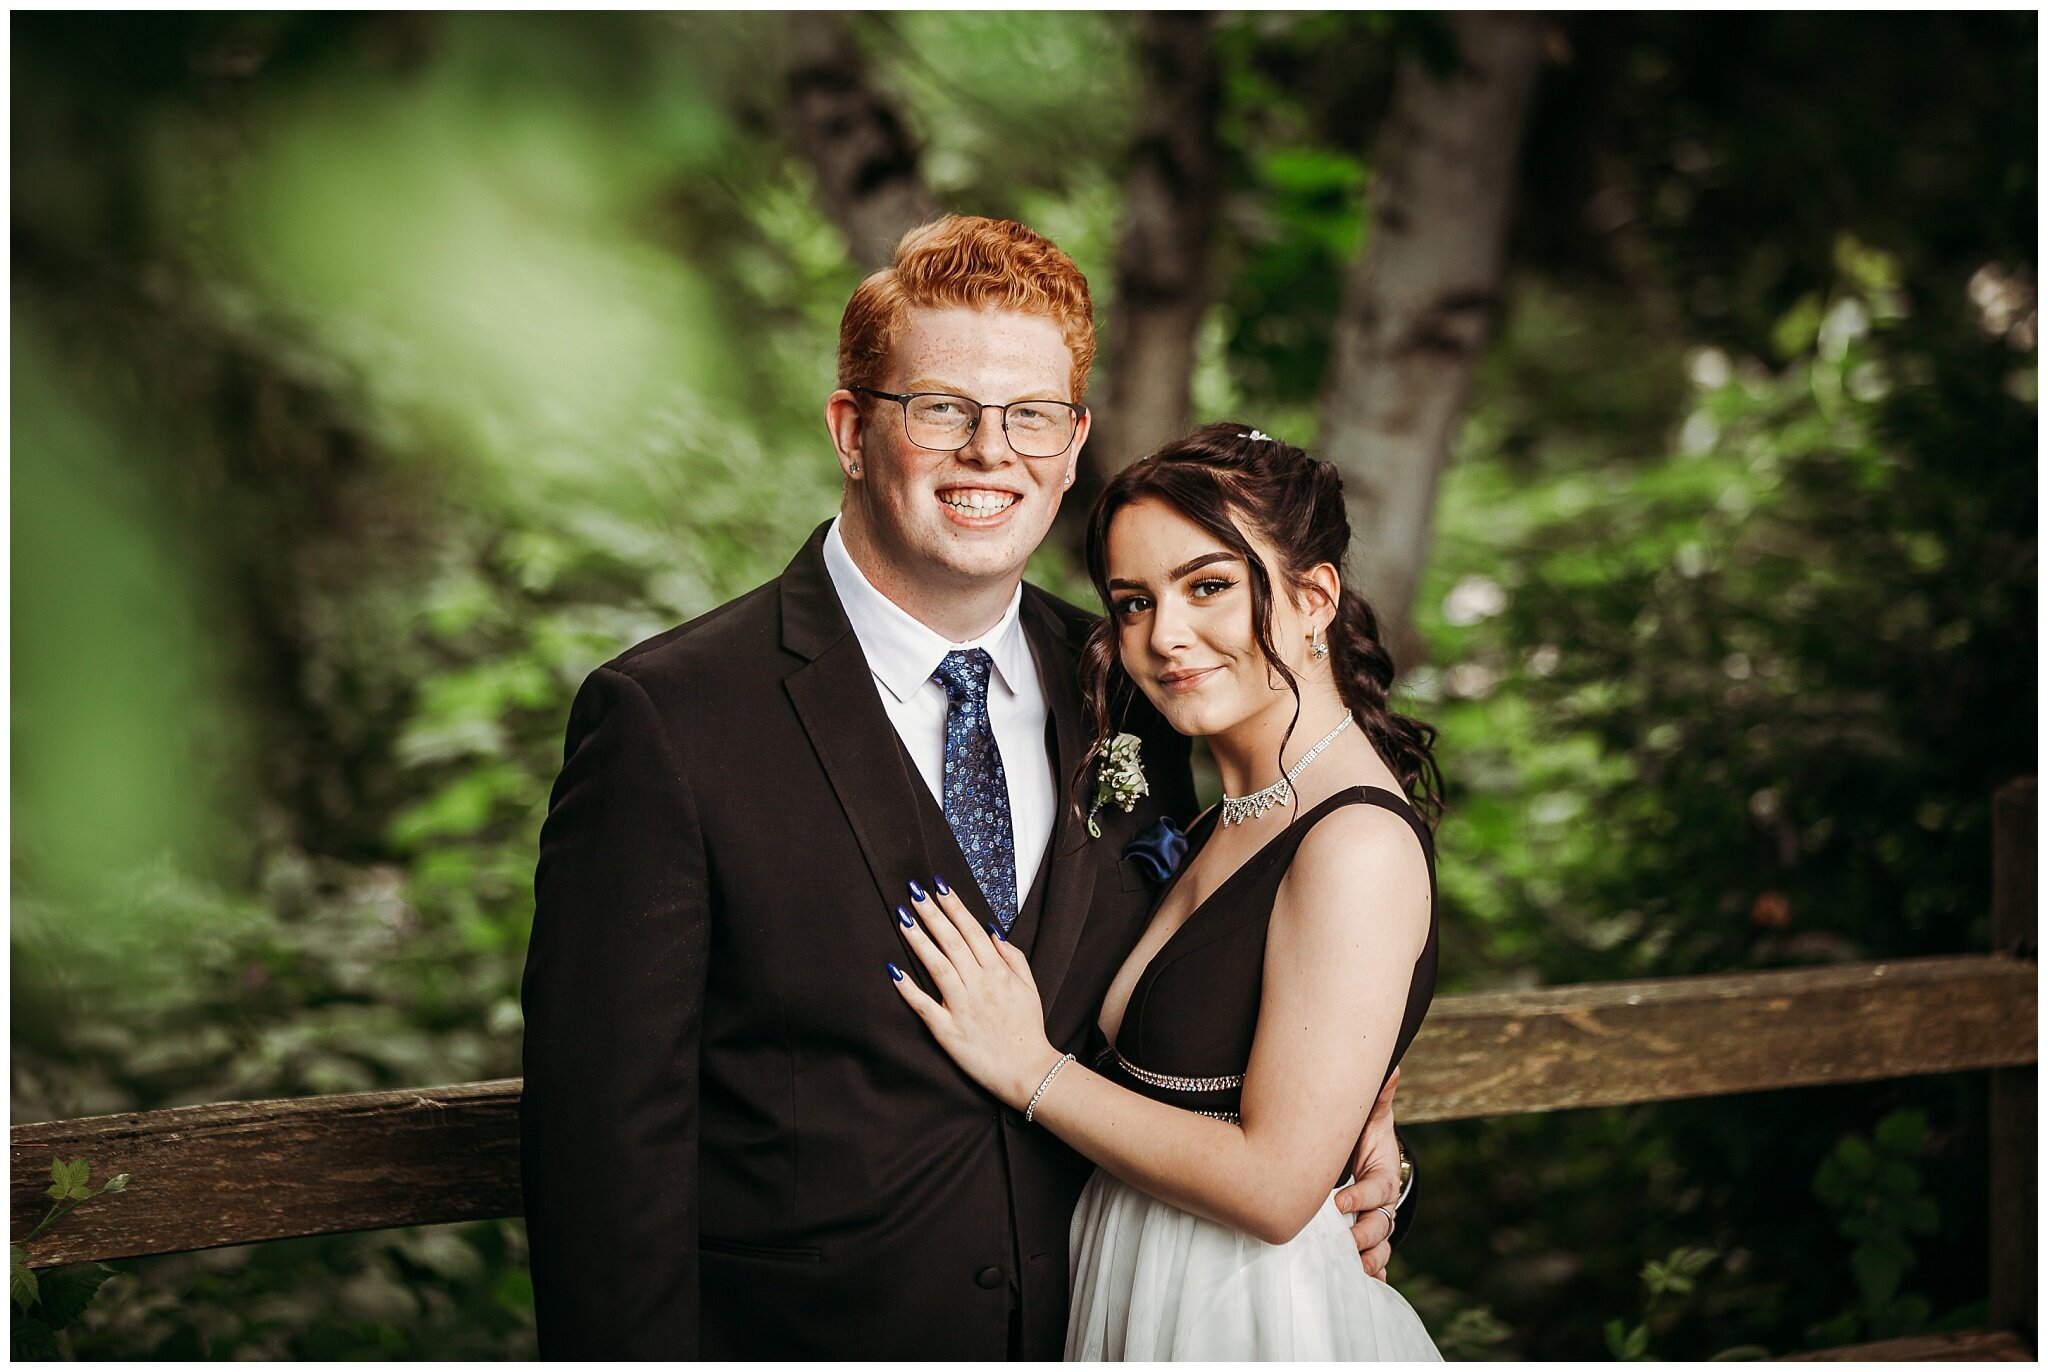 Chilliwack Highschool Prom Graduation Photographer 2019 Abbotsford fun bright_0003.jpg